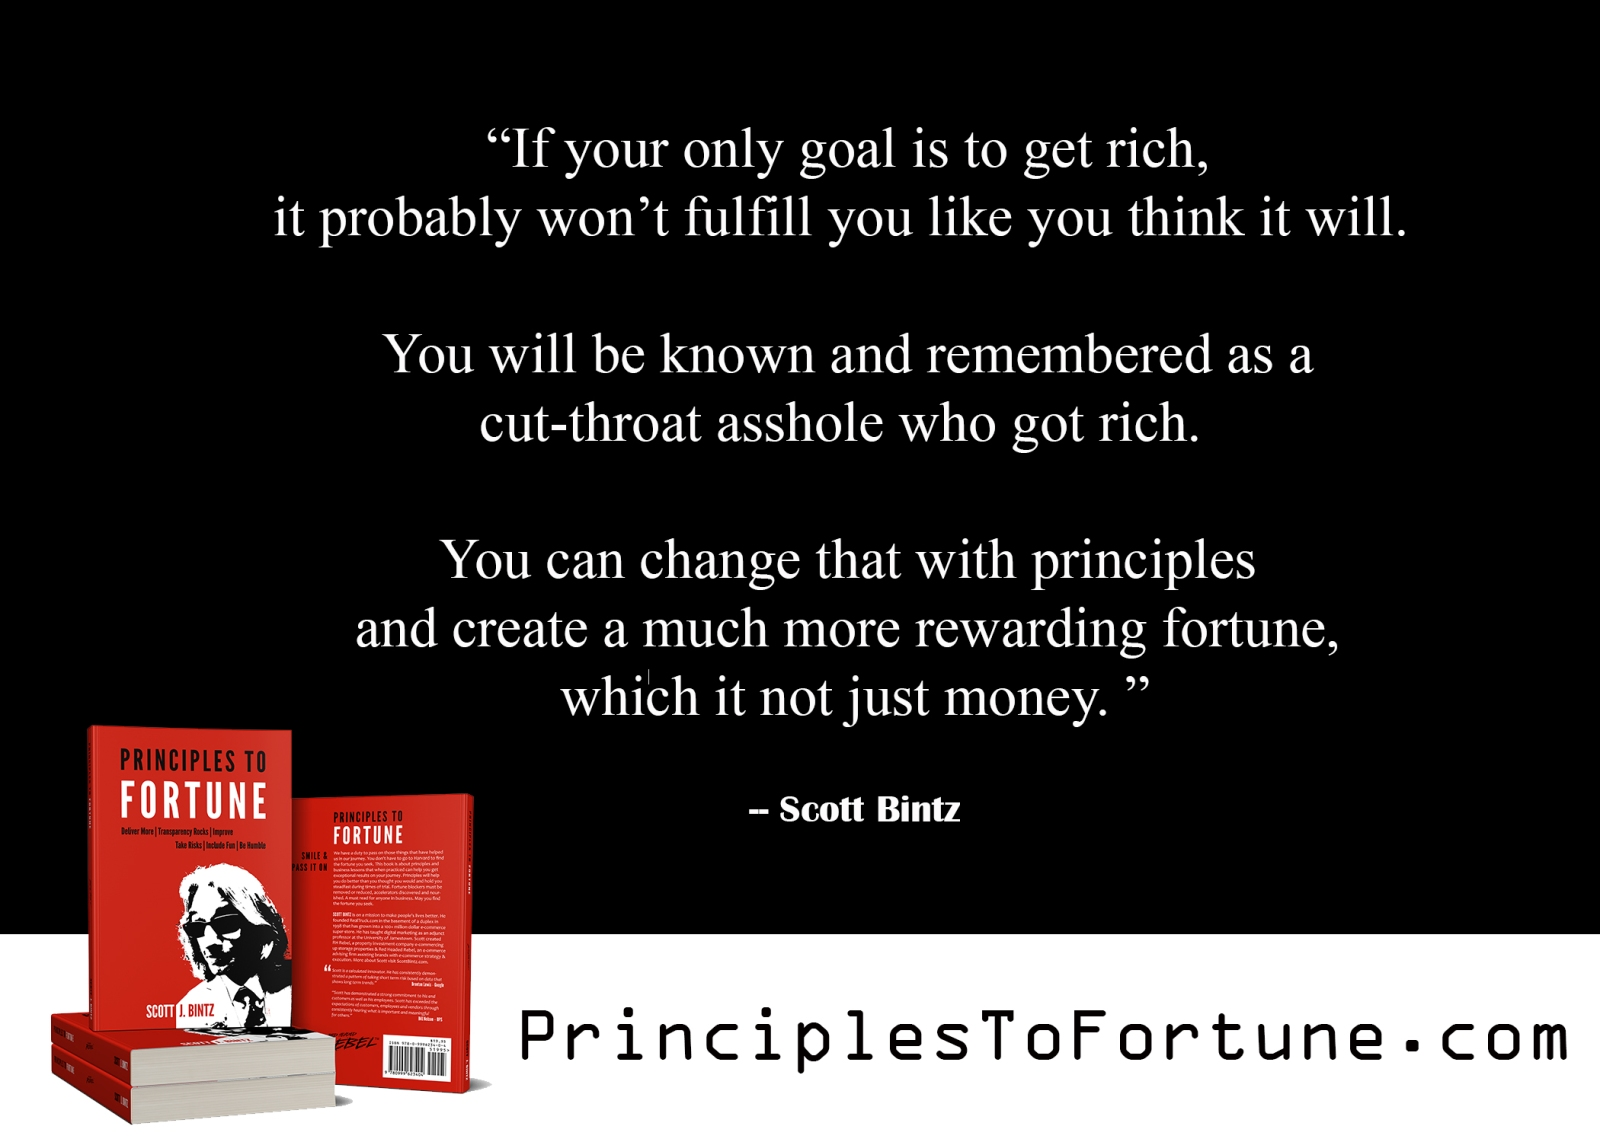 """If your only goal is to get rich, it probably won't fulfill you like you think it will. You will be known as a cut-throat asshole who got rich. You can change that with principles and create a much more rewarding fortune."""" Quote from the Book Principles to Fortune by Scott Bintz"""